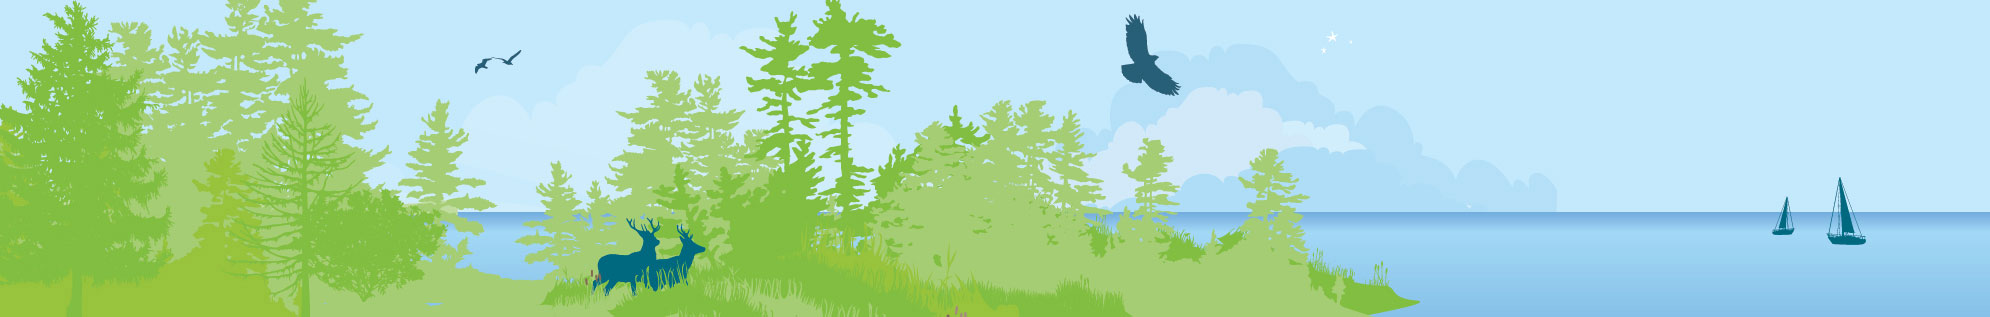 A section of the great lakes header illustration showing a forest with the silhouettes of local animals -- deer and a hawk -- and the wide expanse of freshwater lake in the background.